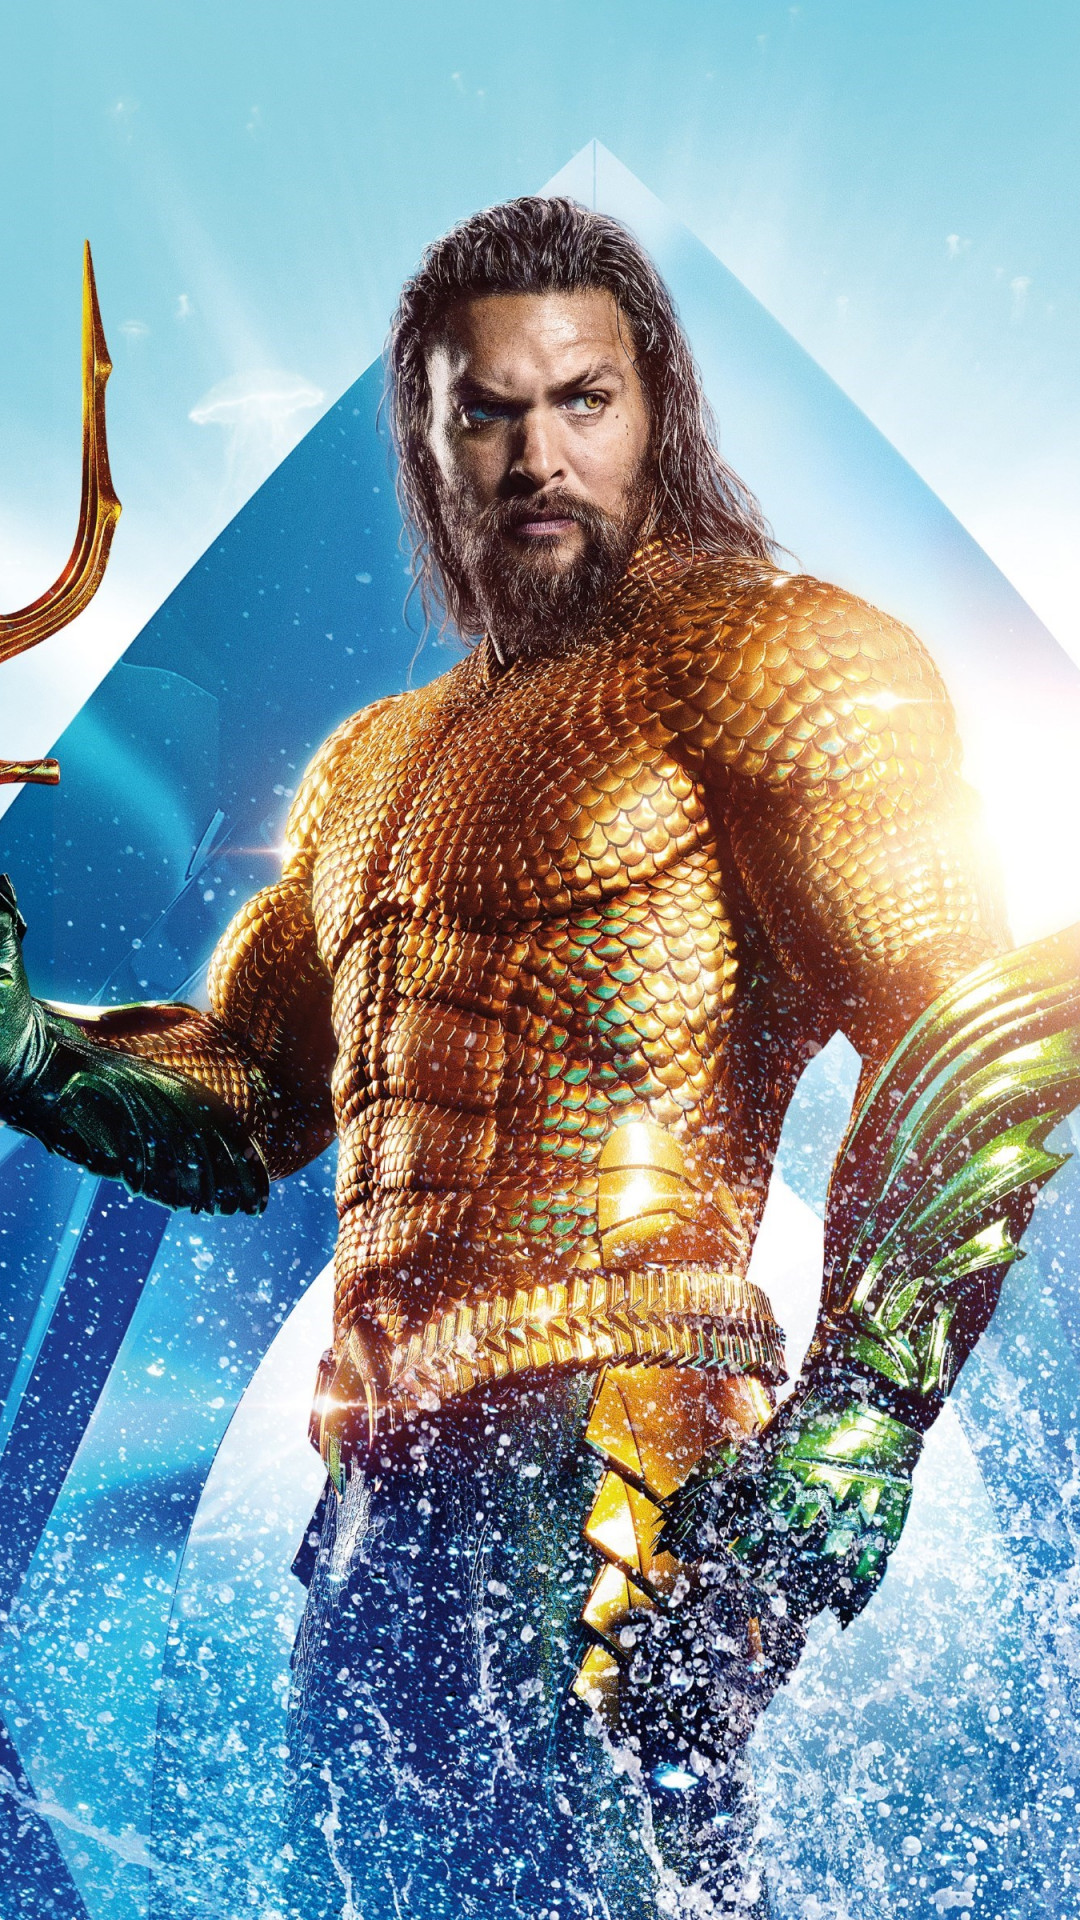 Aquaman Hero wallpaper 1080x1920